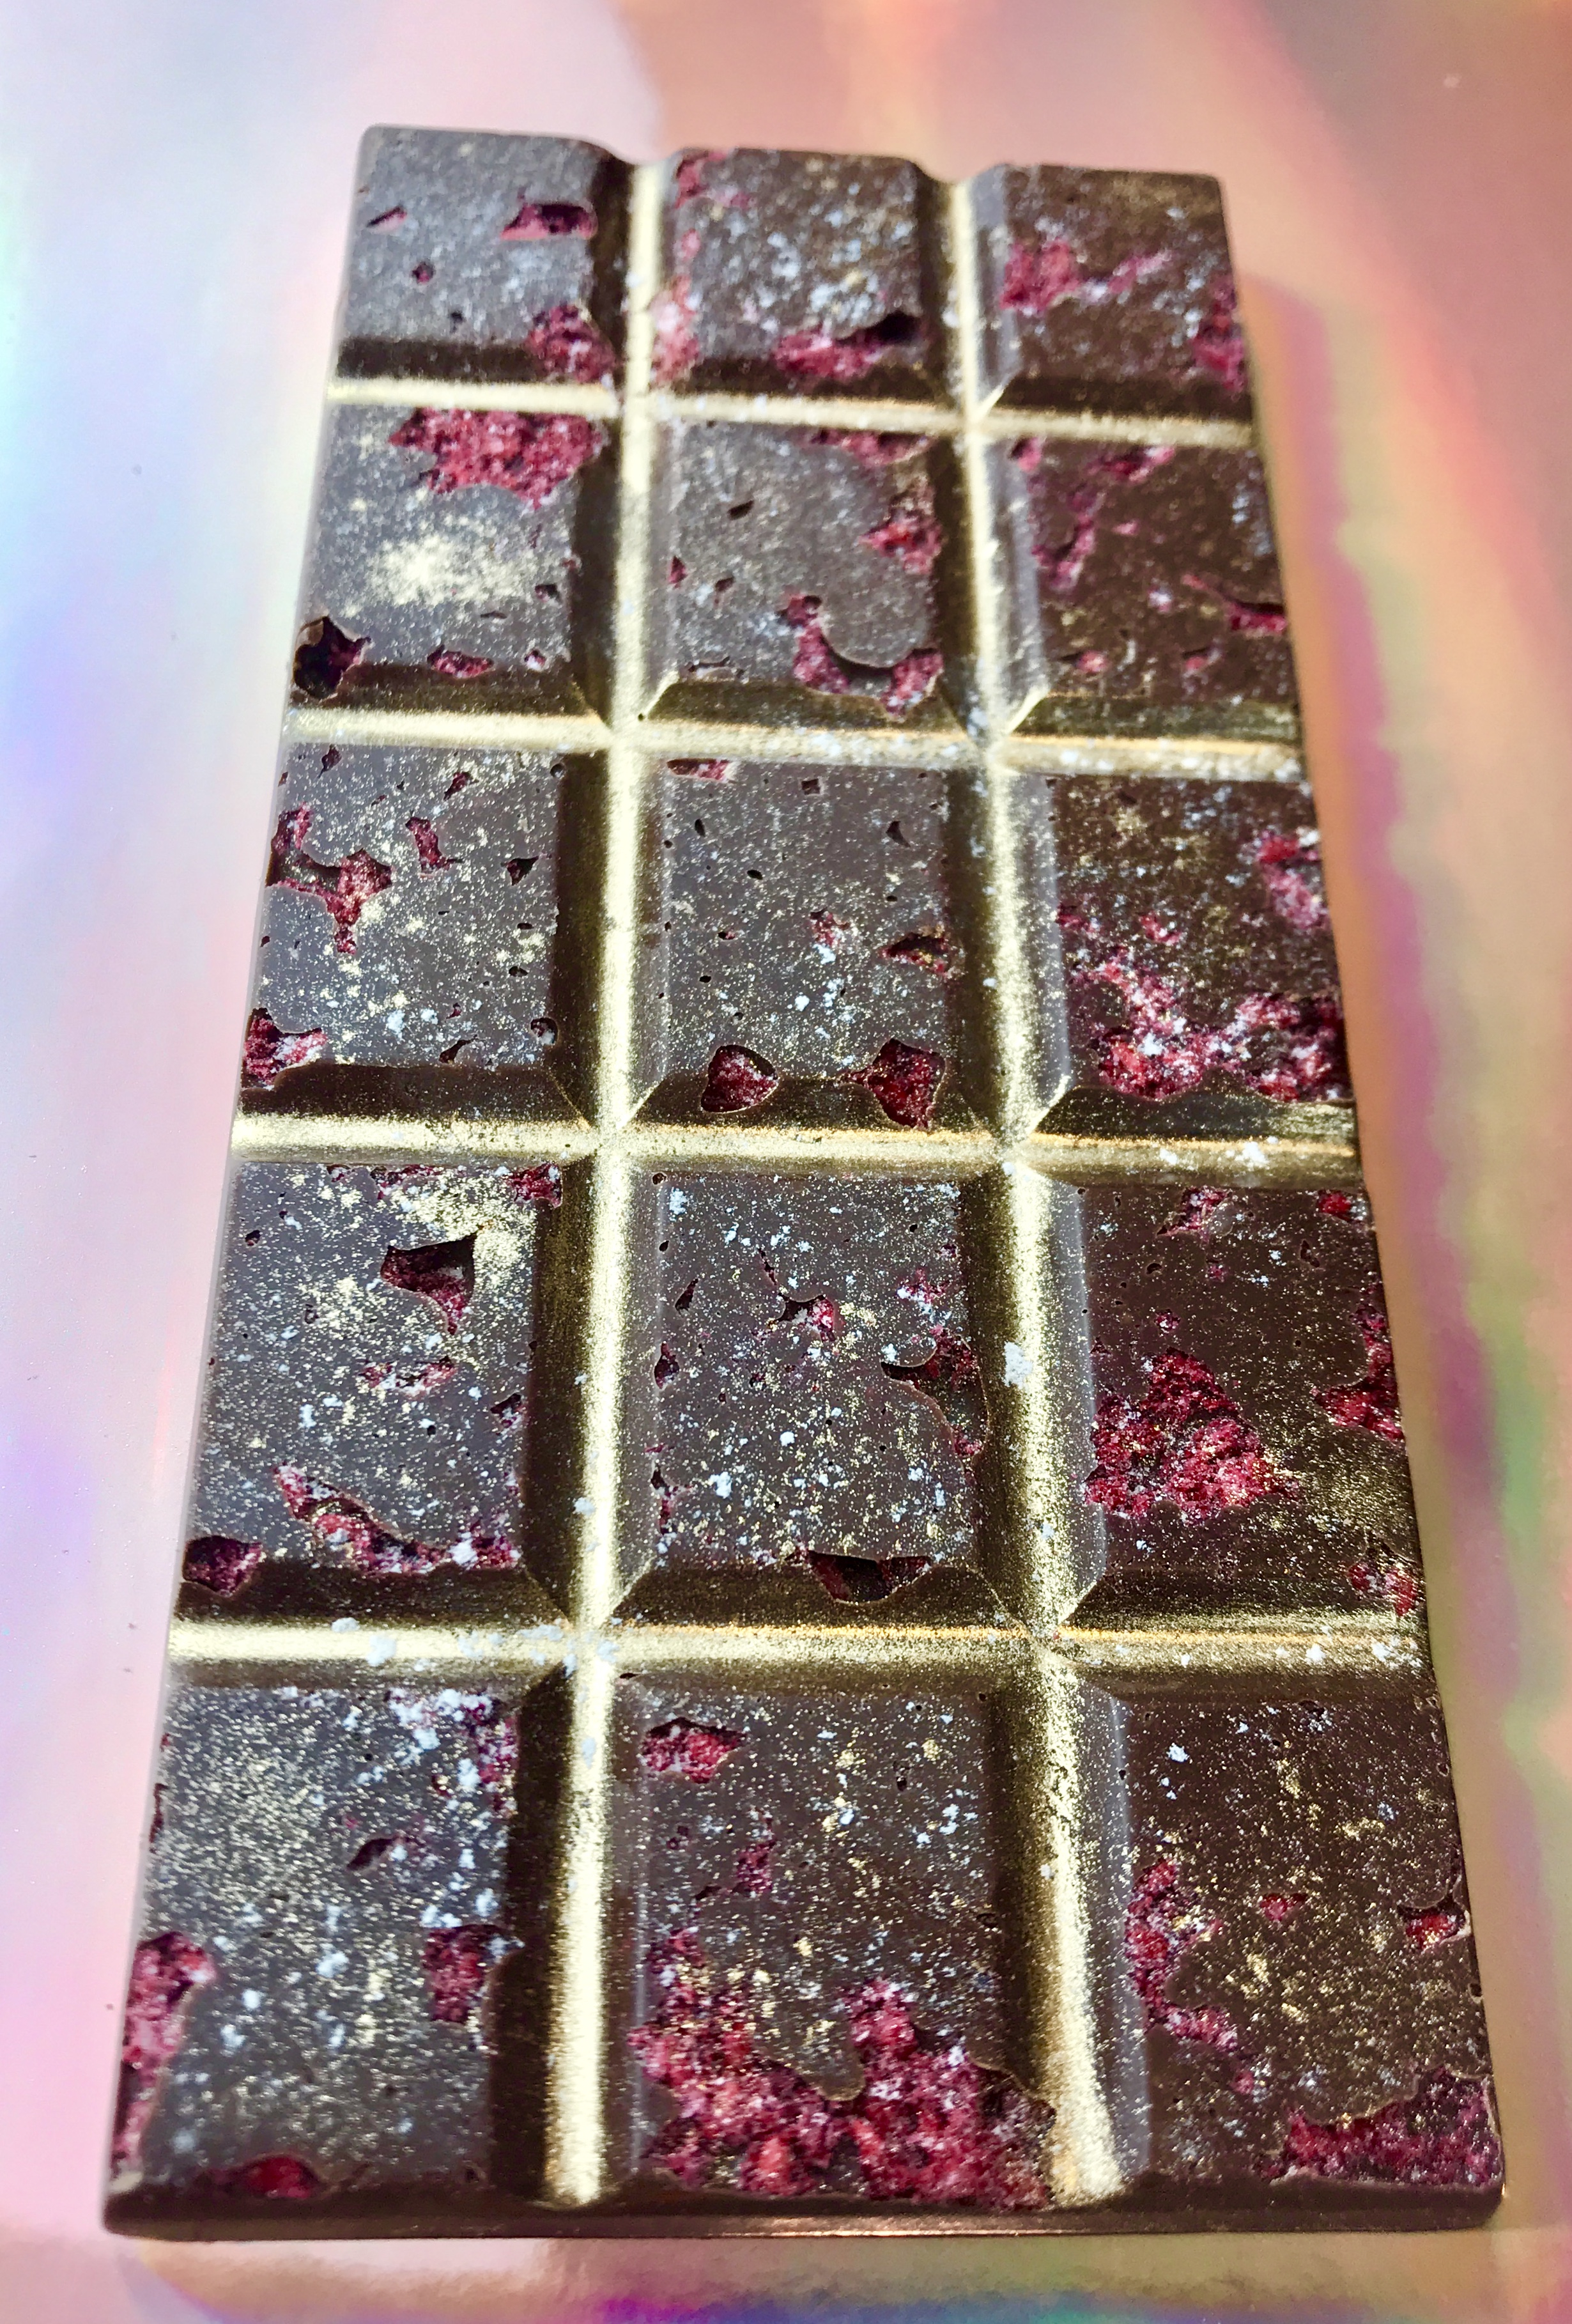 5. Radiant Raspberry Dark Chocolate - Experience Radiant Raspberry… The perfect combination of sweet & tart burst on your palette for a vibrant sensation like no other! Featuring Wild Red Raspberries in Raw Dark Chocolate Dusted with Pink Himalayan Salt & 24K Gold!